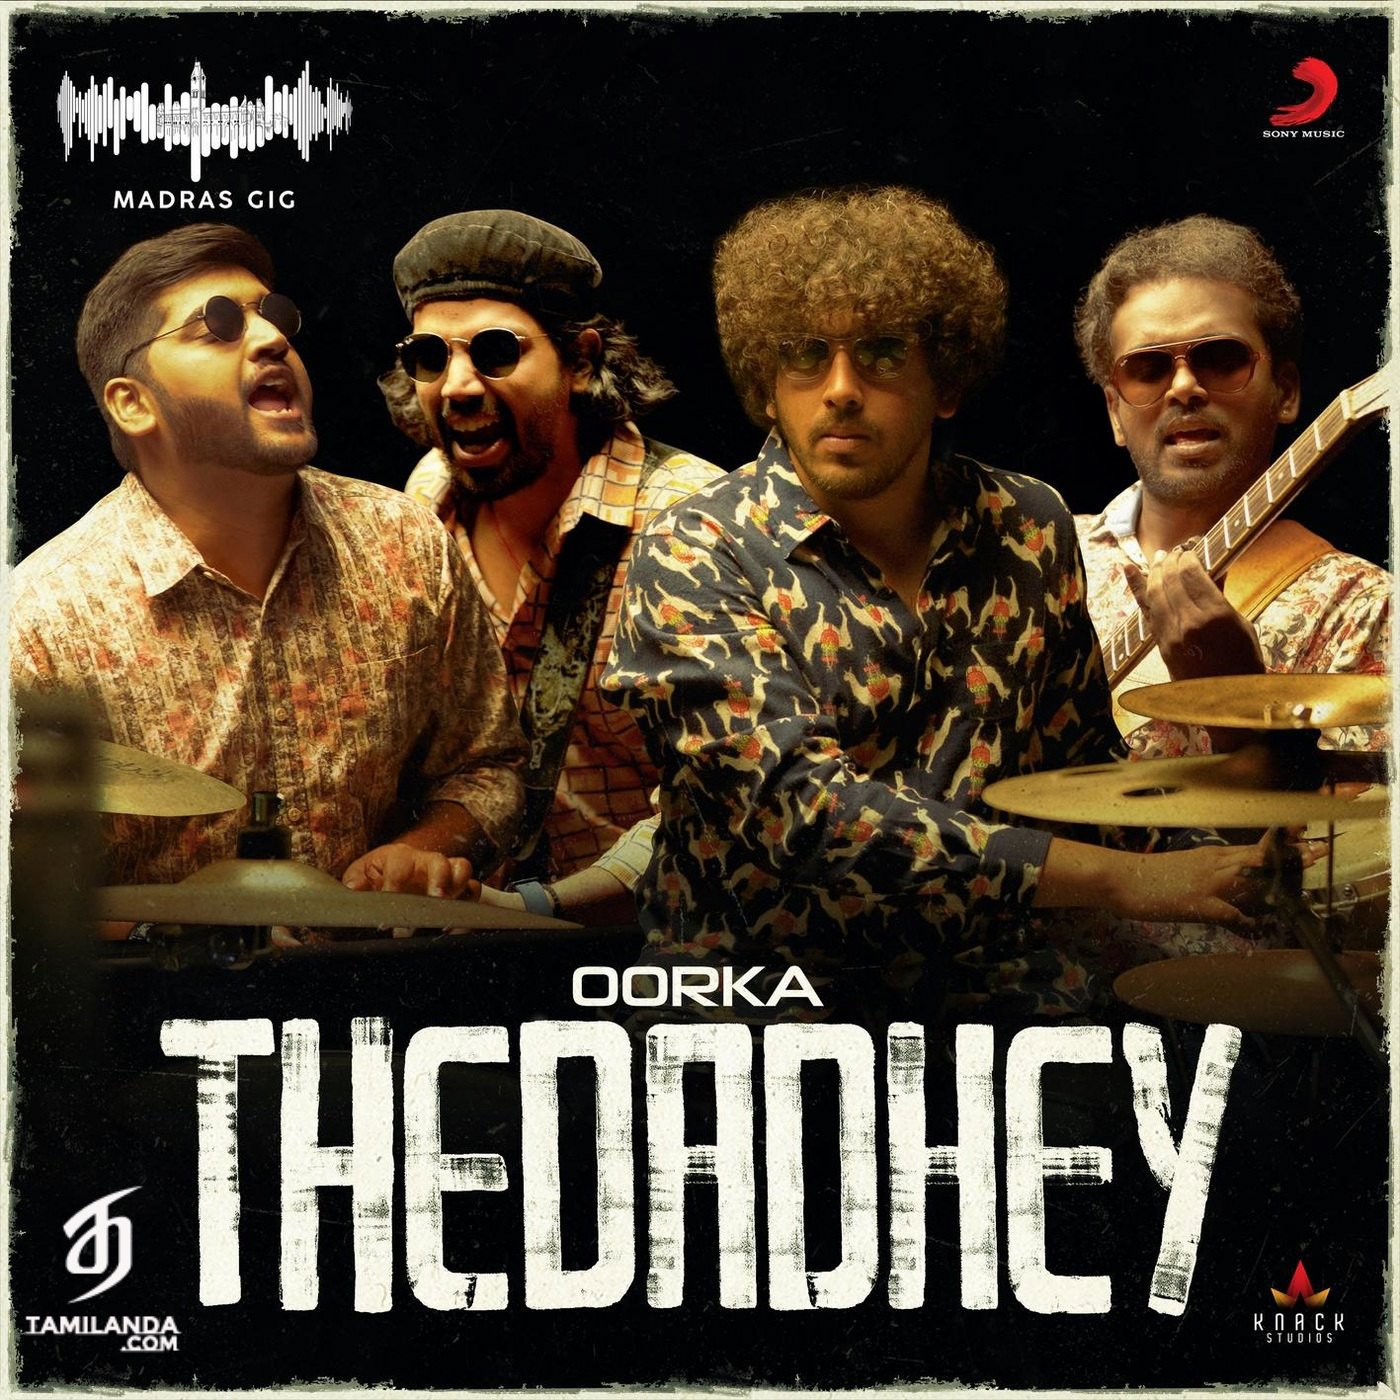 Thedadhey (Madras Gig) Single FLAC Song